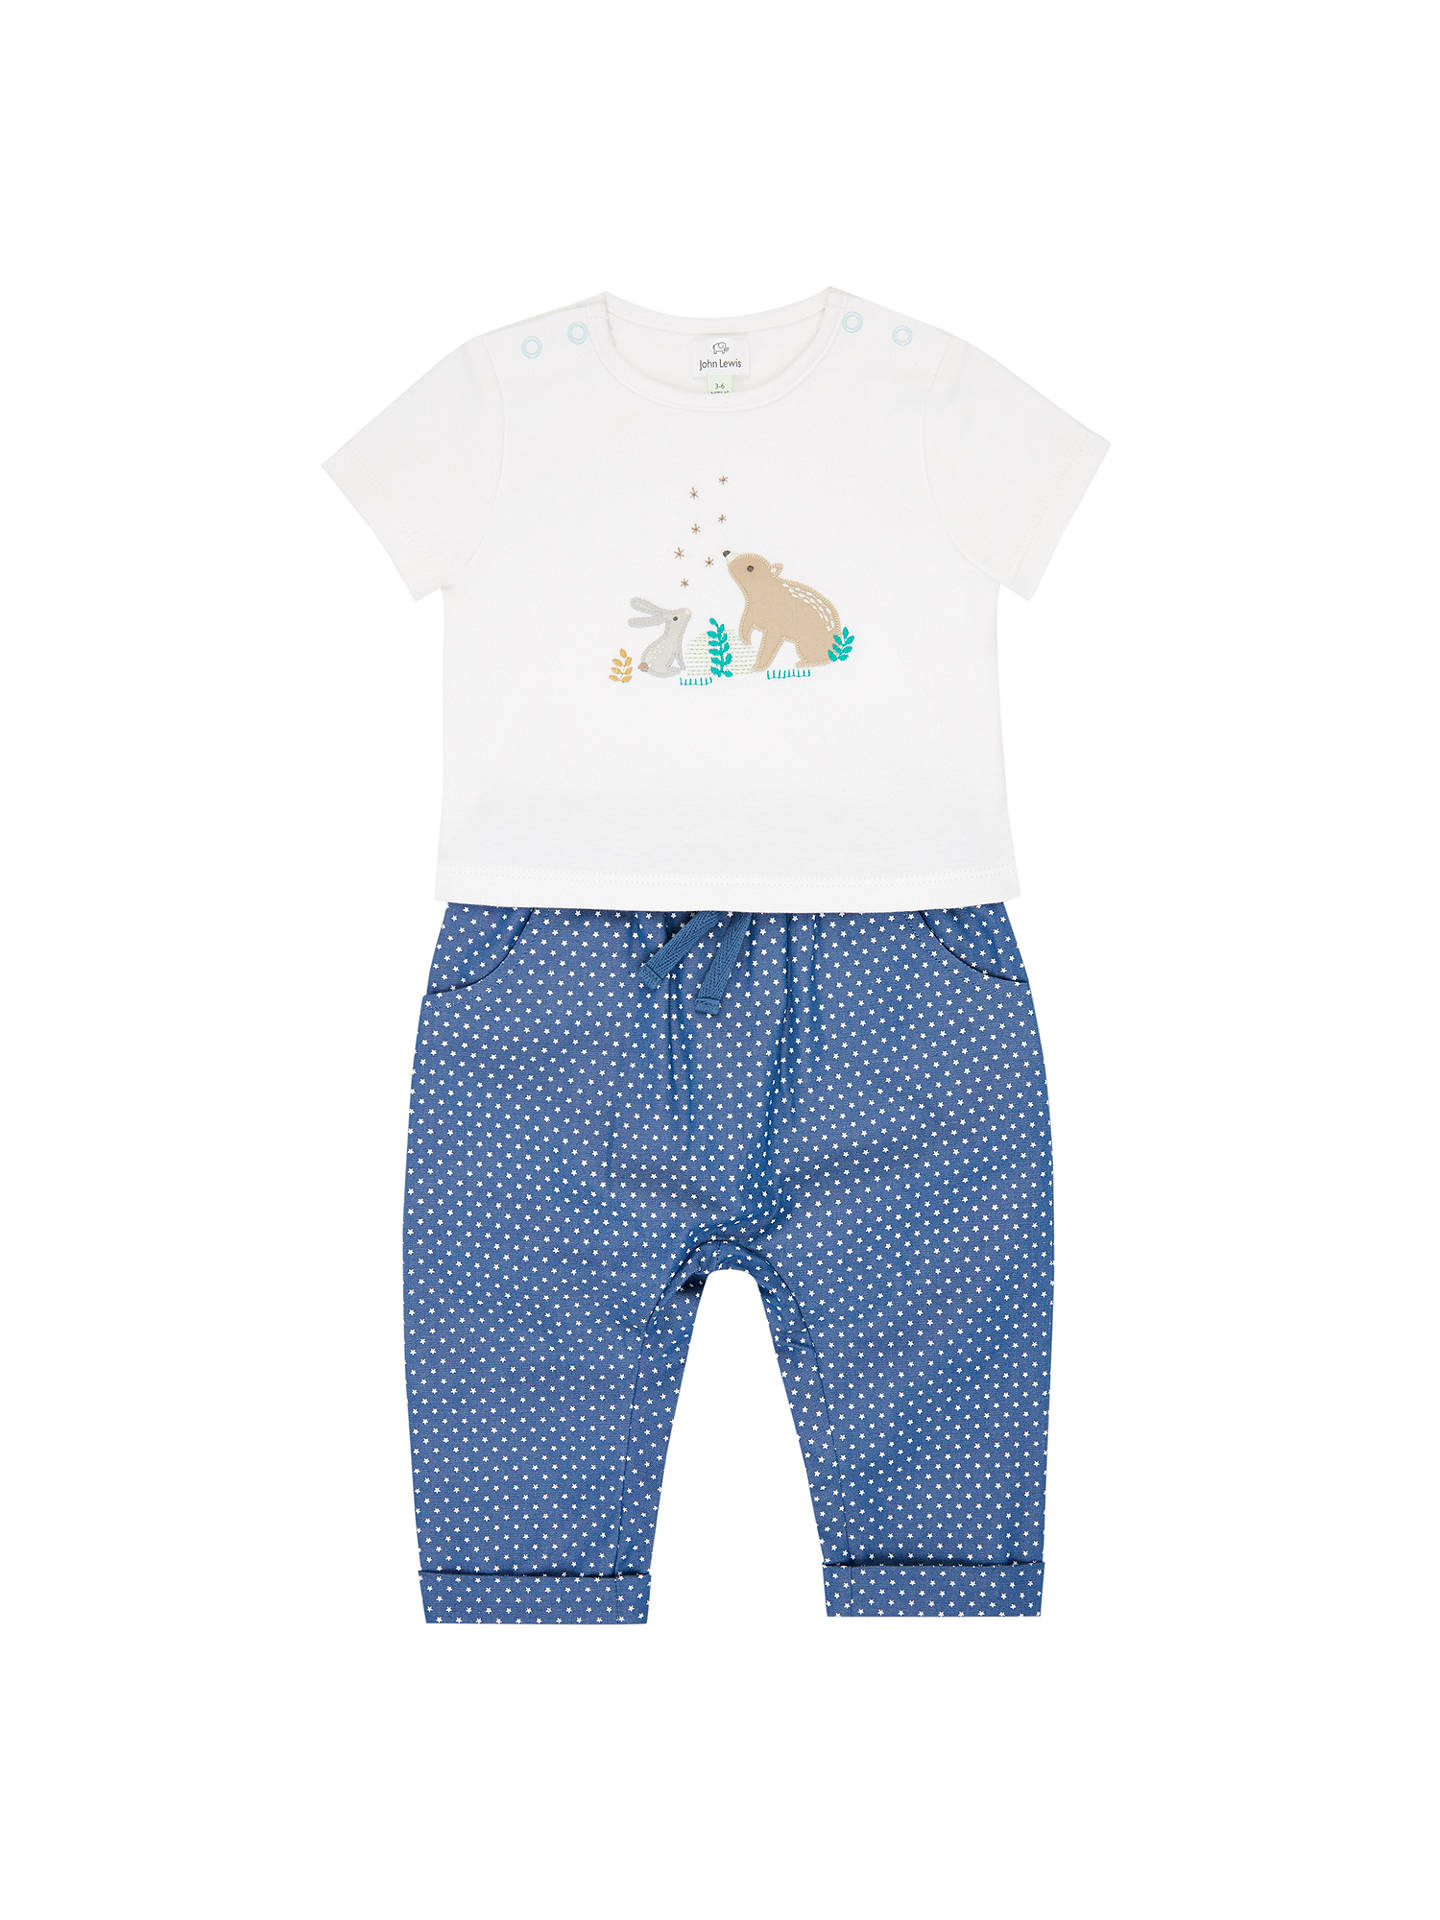 d34f22012c John Lewis   Partners Baby Bear   Bunny T-Shirt   Trousers Set ...